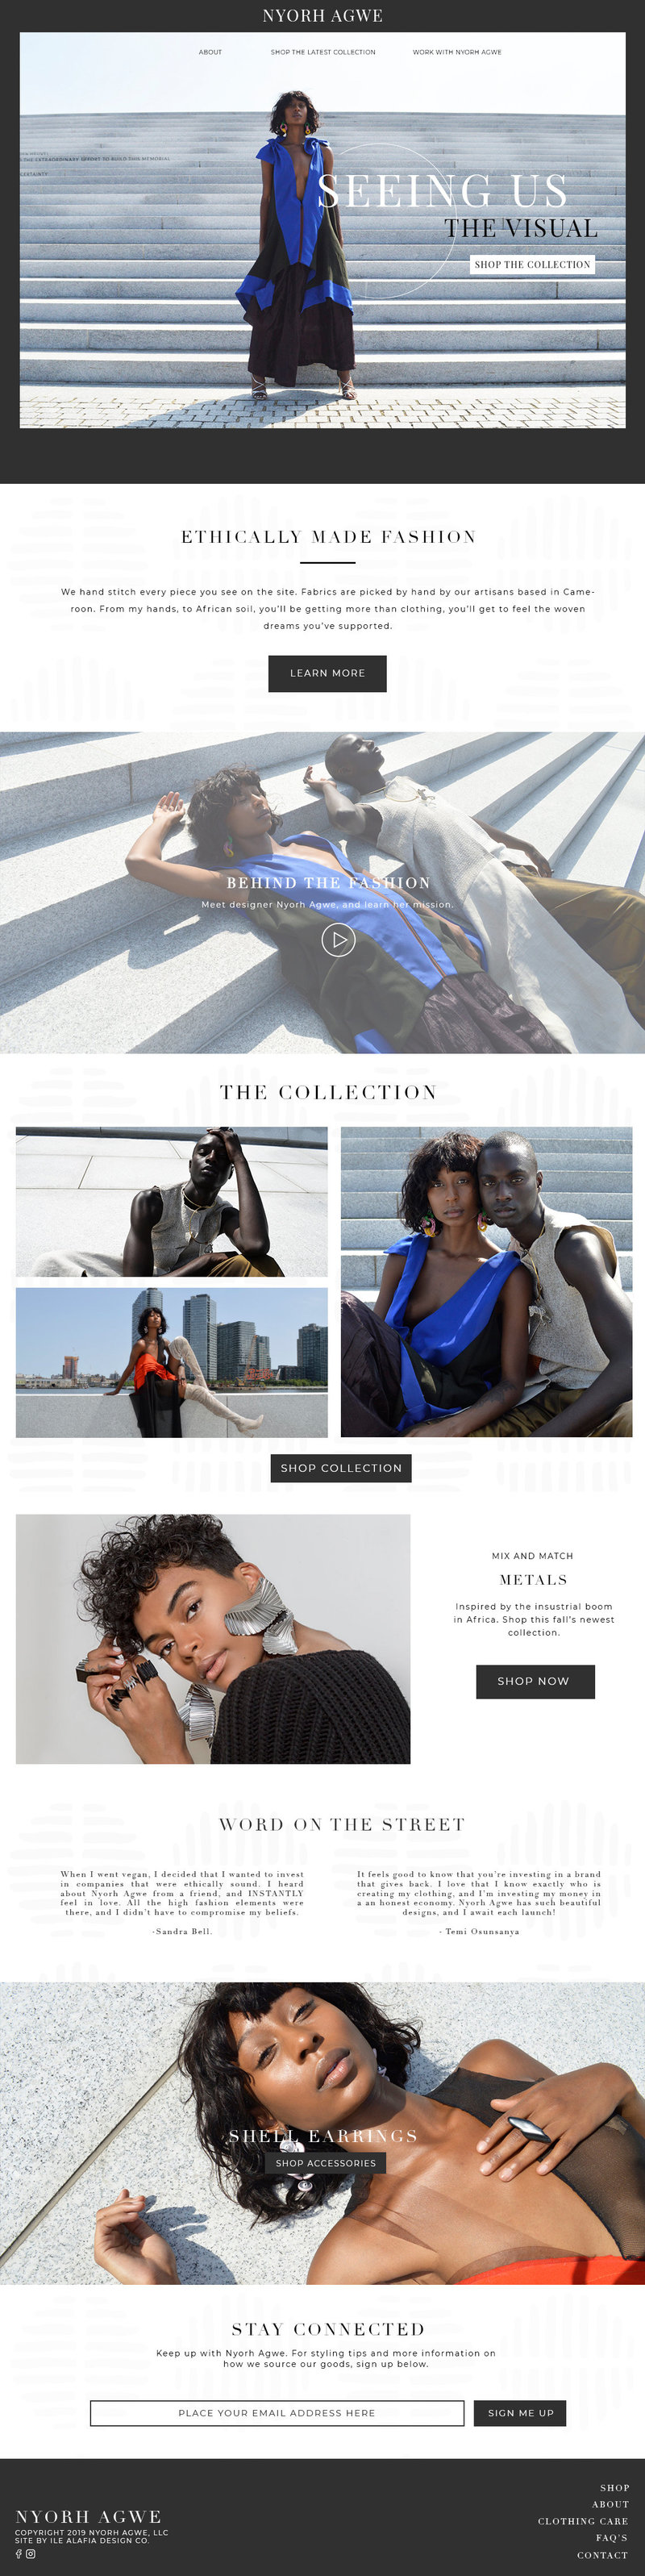 E-Commerce site design for Nyorh Agwe by Ile Alafia Design Co.